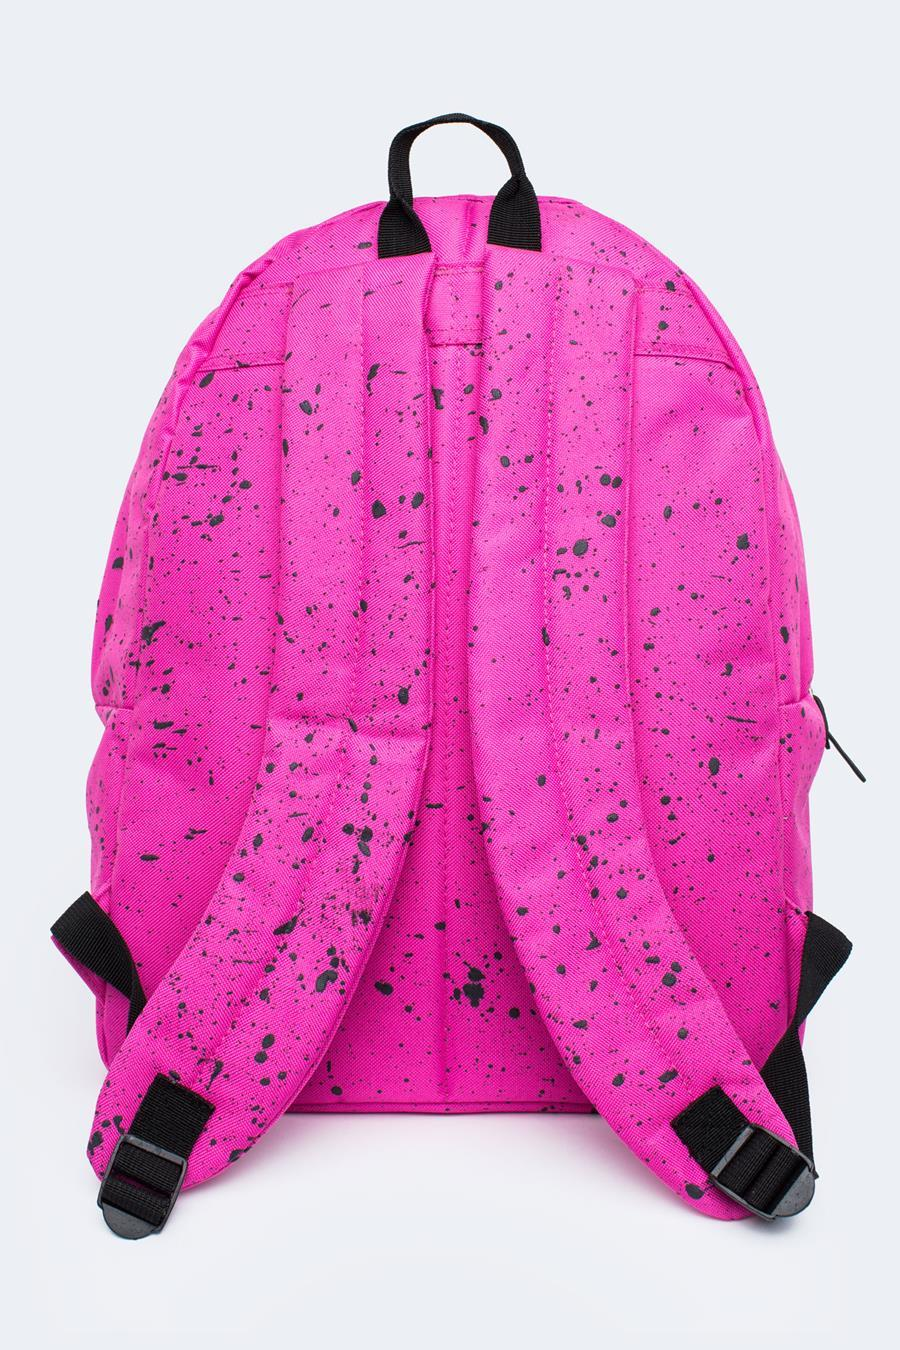 c26b811a2730 HYPE PINK WITH BLACK SPECKLE BACKPACK – JustHype ltd